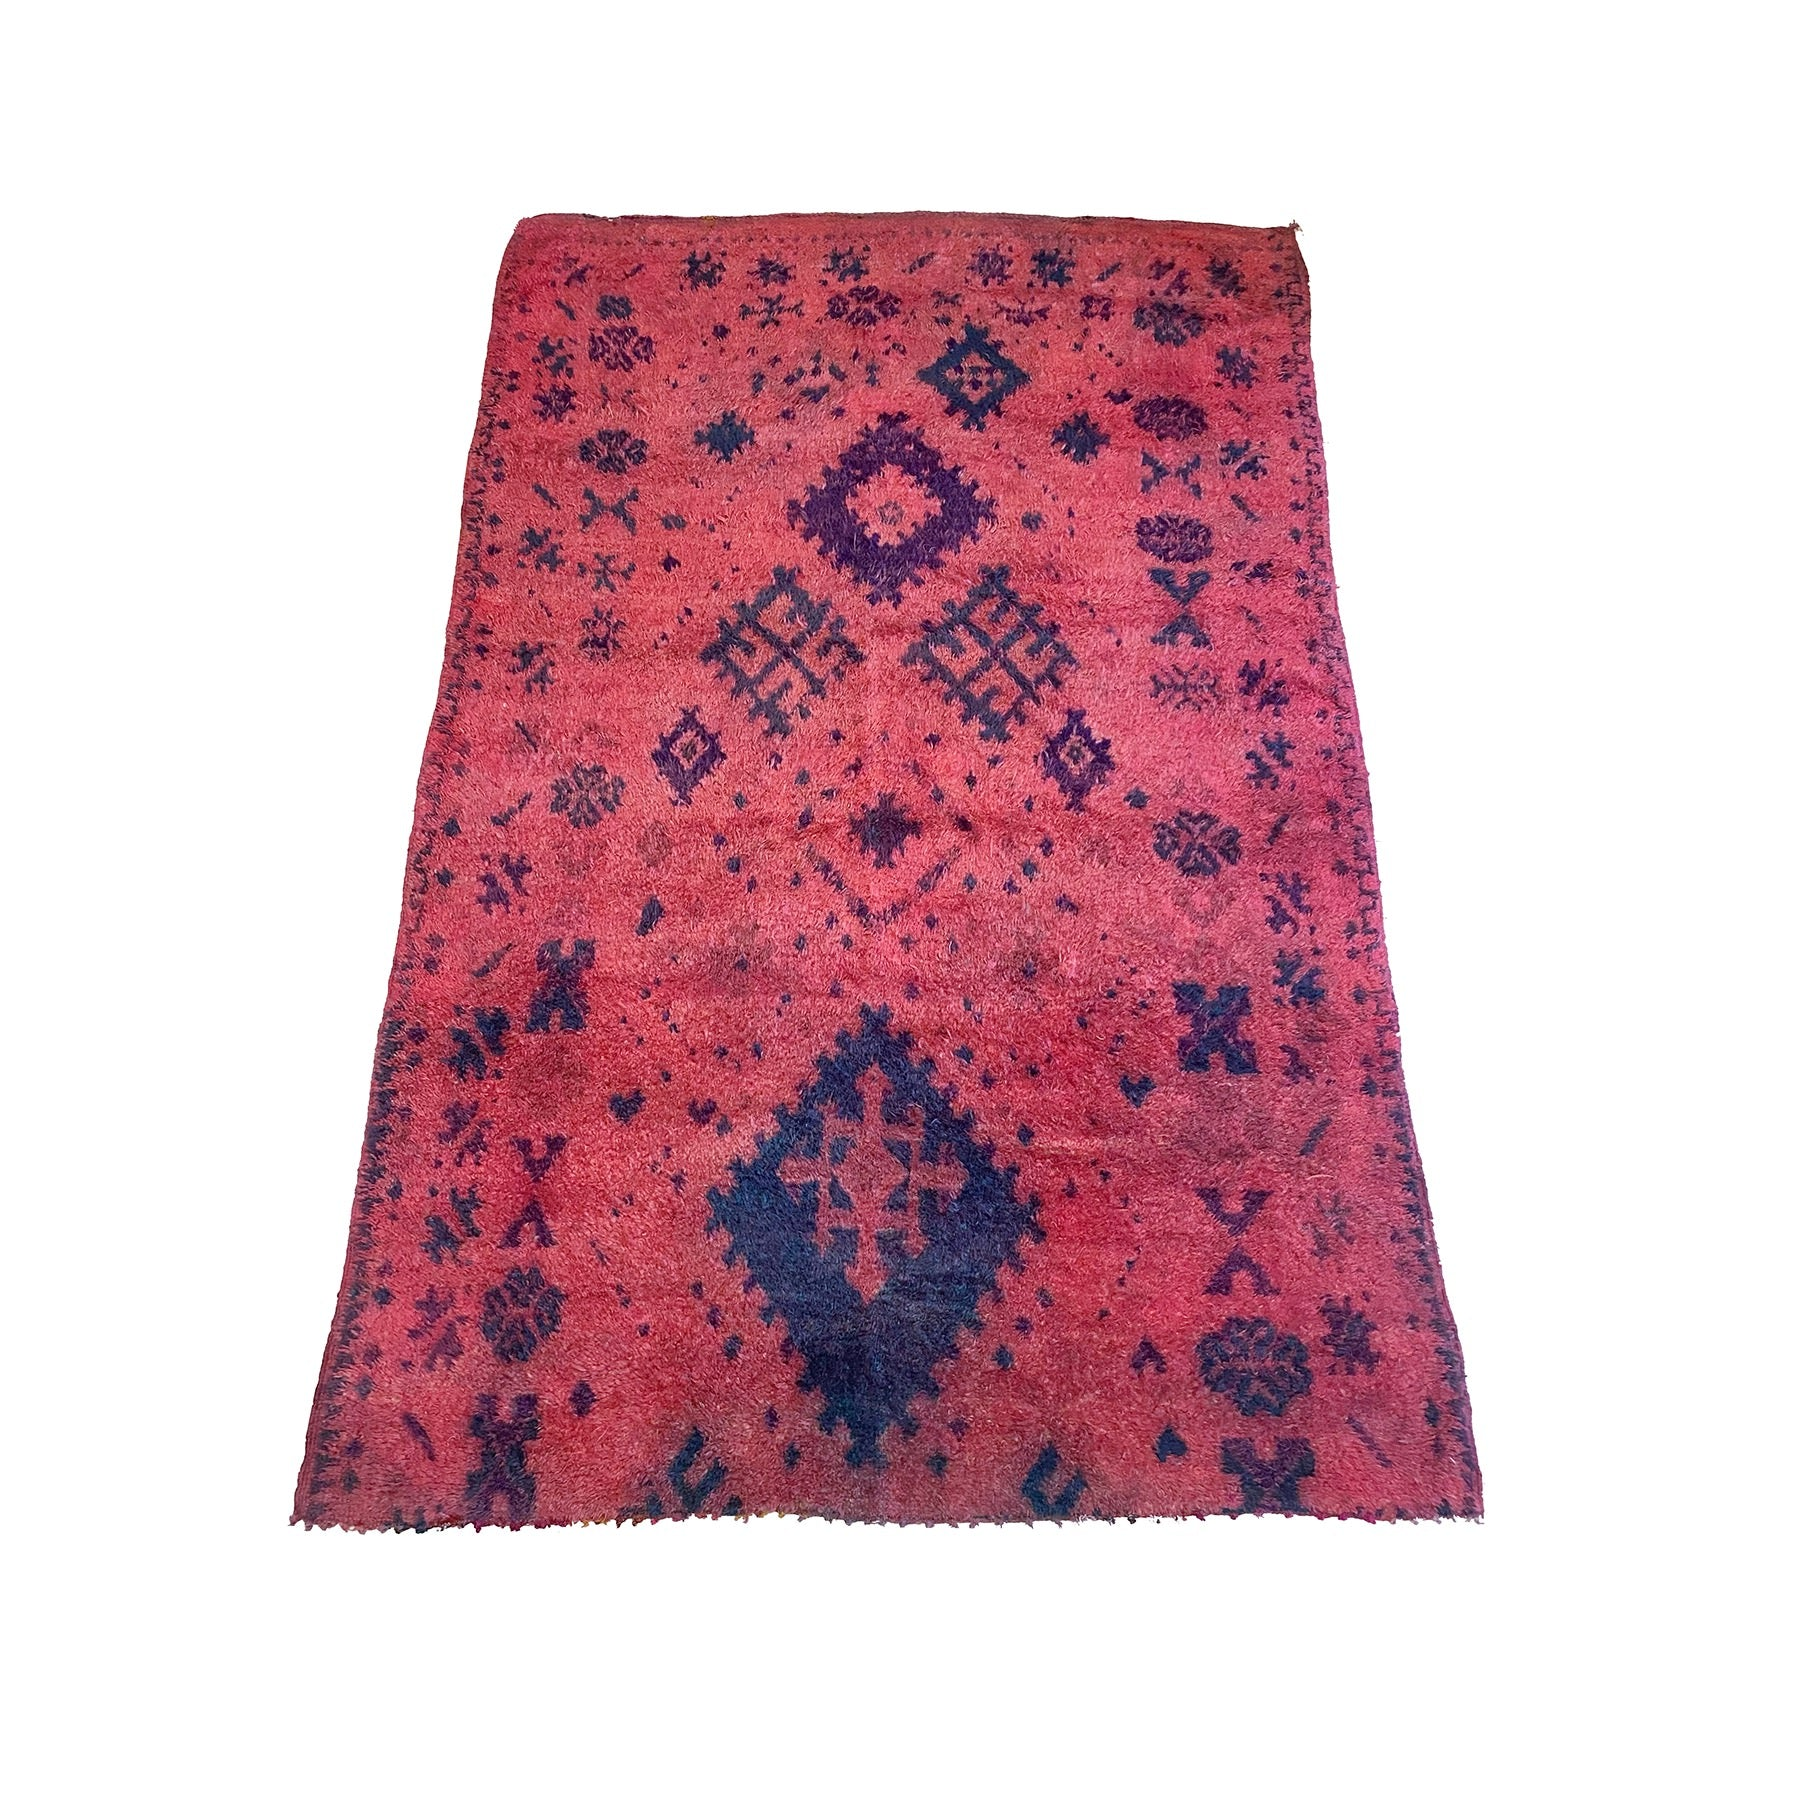 Vintage pink and purple Moroccan berber carpet - Kantara | Moroccan Rugs